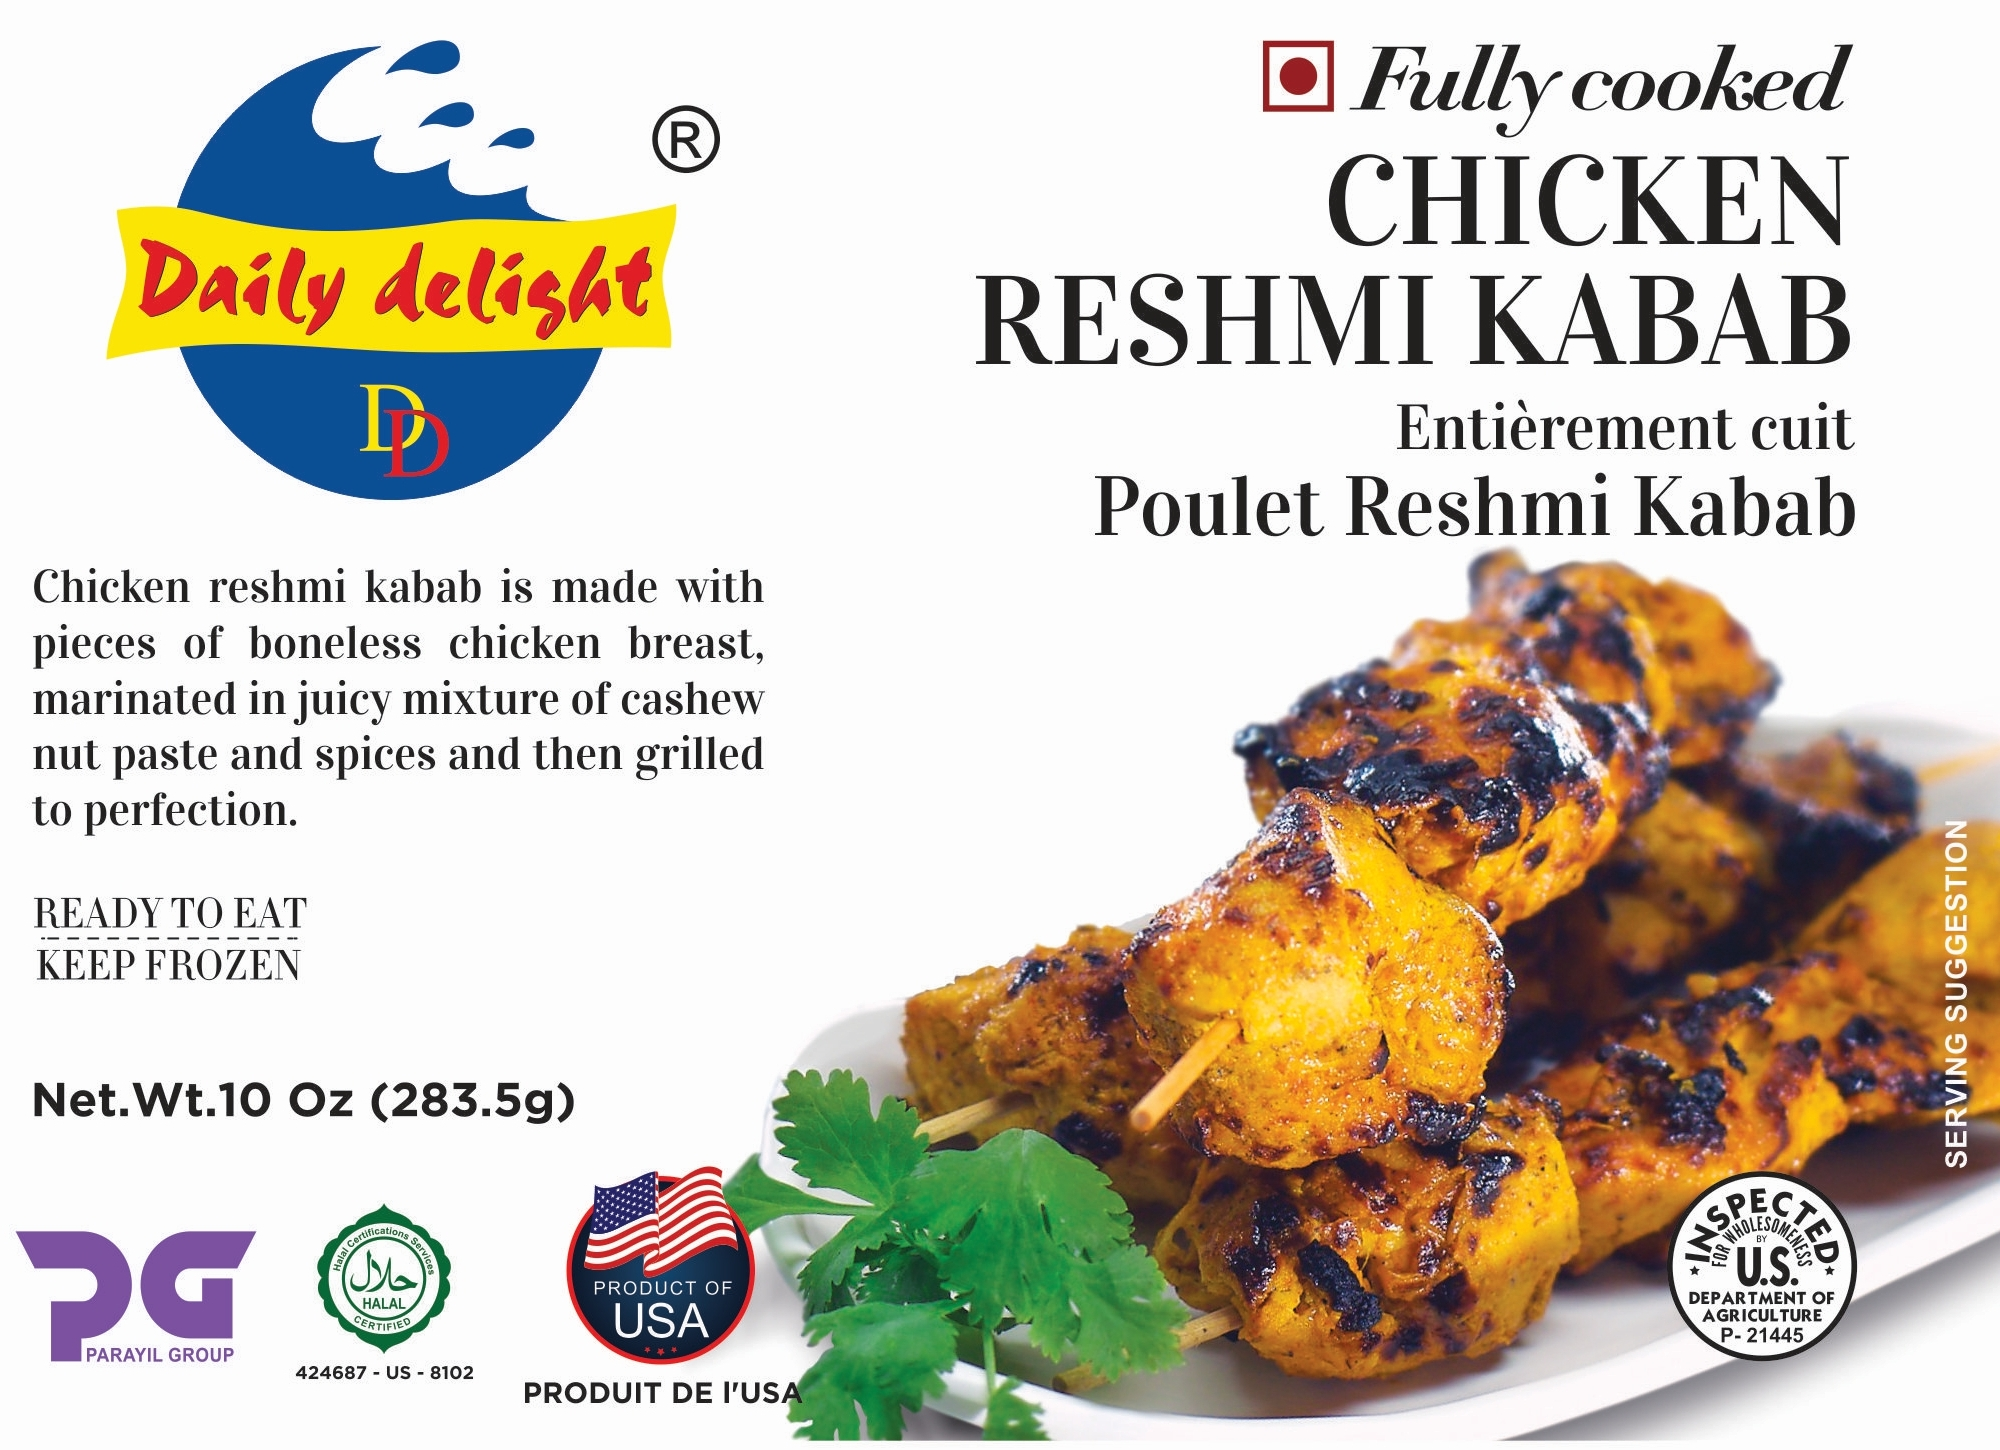 Daily Delight Chicken Reshmi Kabab